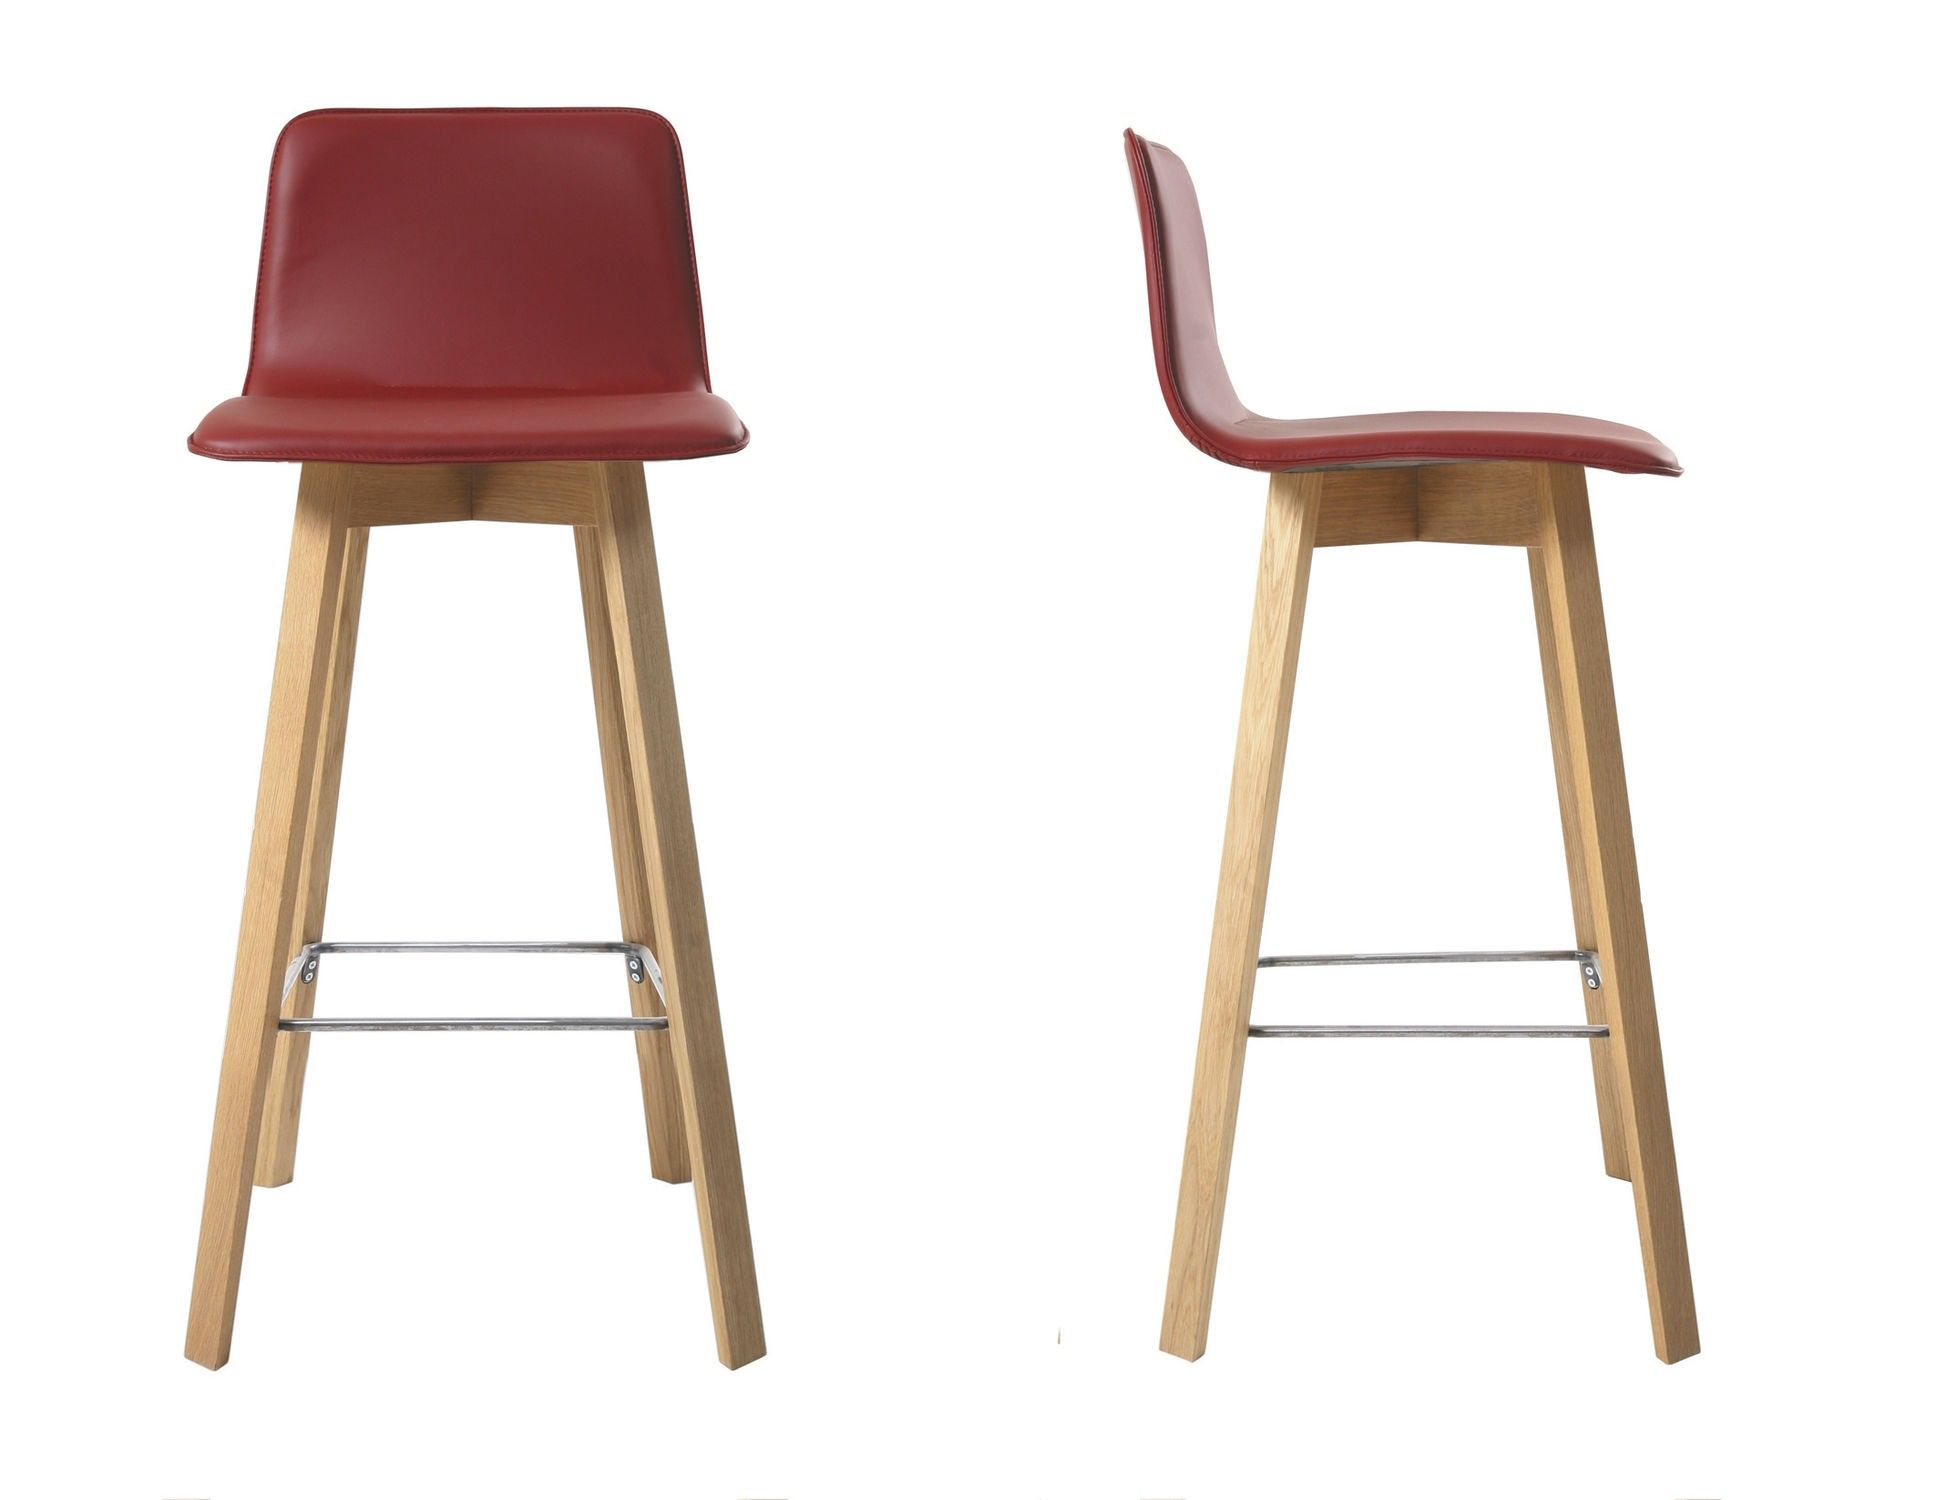 kitchen stools with backs mini light pendant for island contemporary wooden upholstered maverick hight red bar stool chair color patio design modern furniture